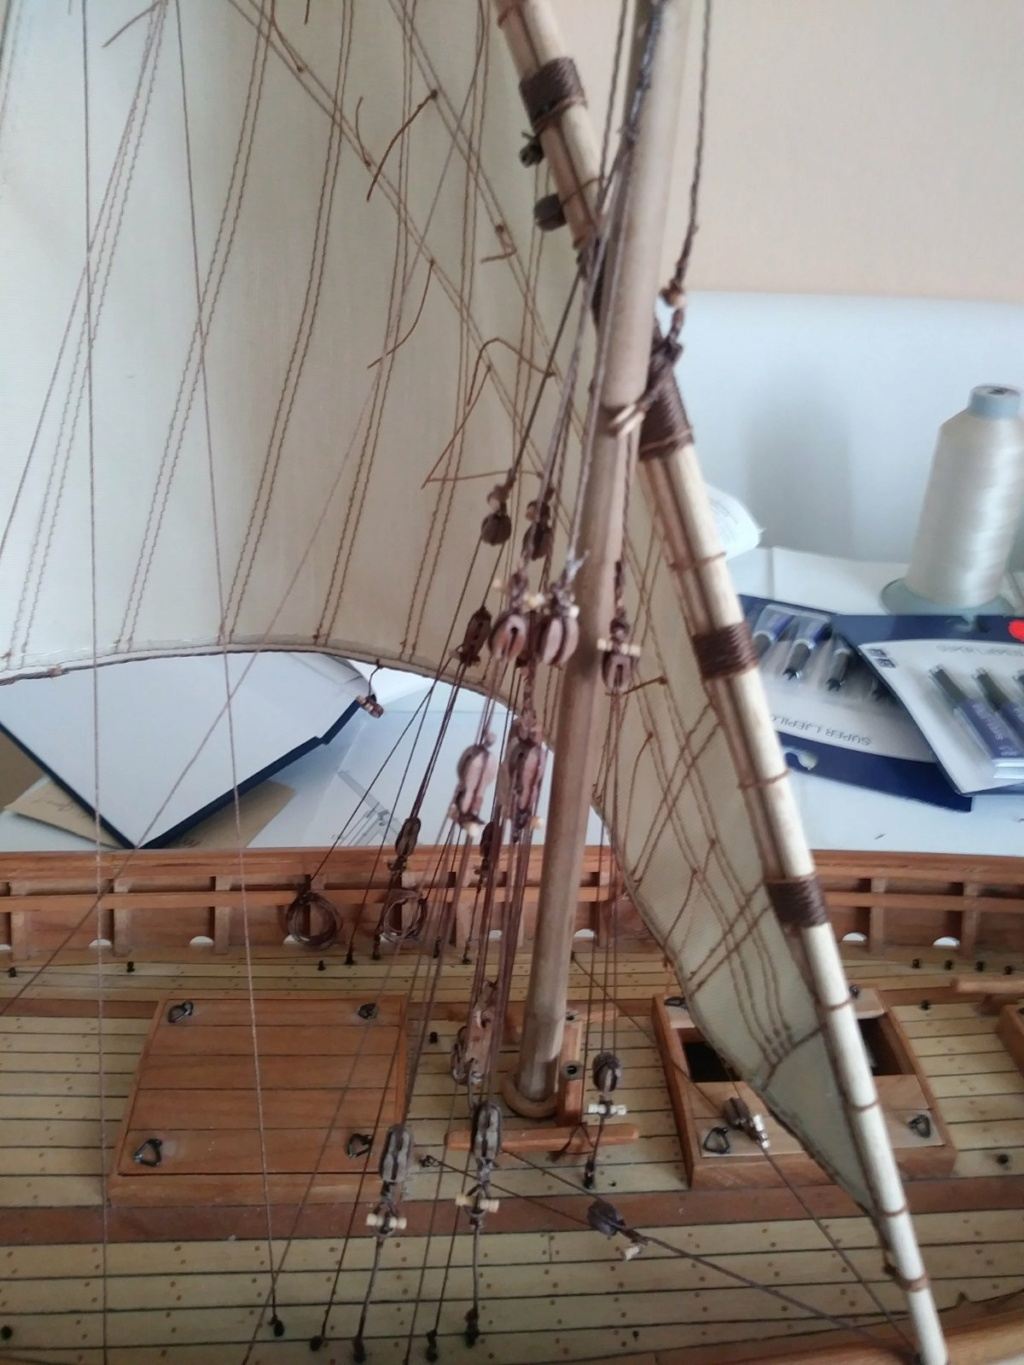 Felucca - Page 3 Img-7f10